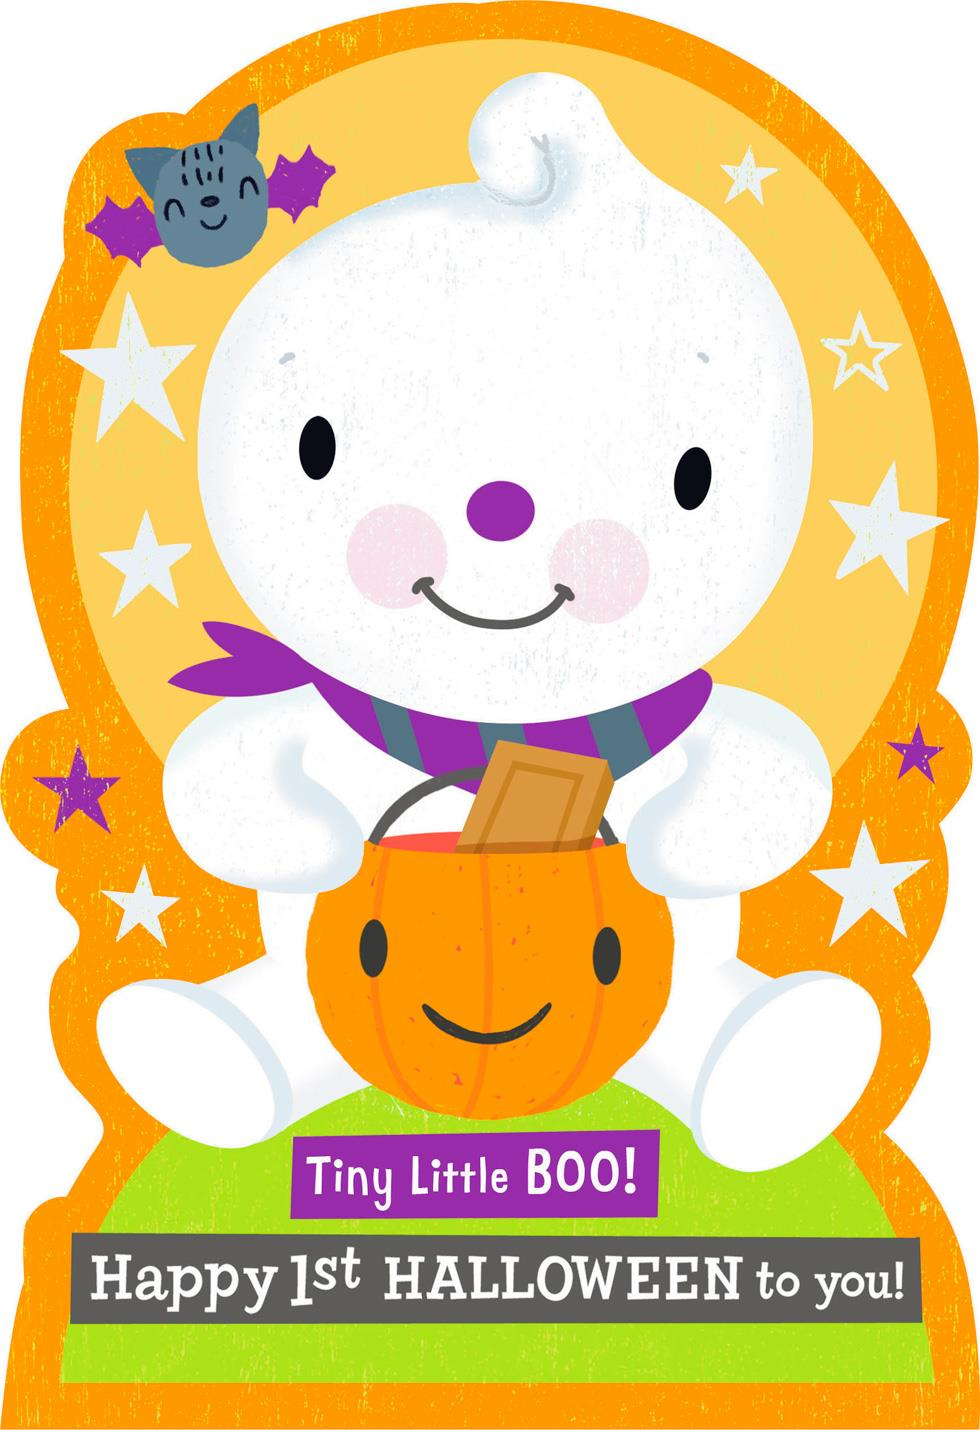 Tiny little boo babys 1st halloween card greeting cards hallmark tiny little boo babys 1st halloween card kristyandbryce Images